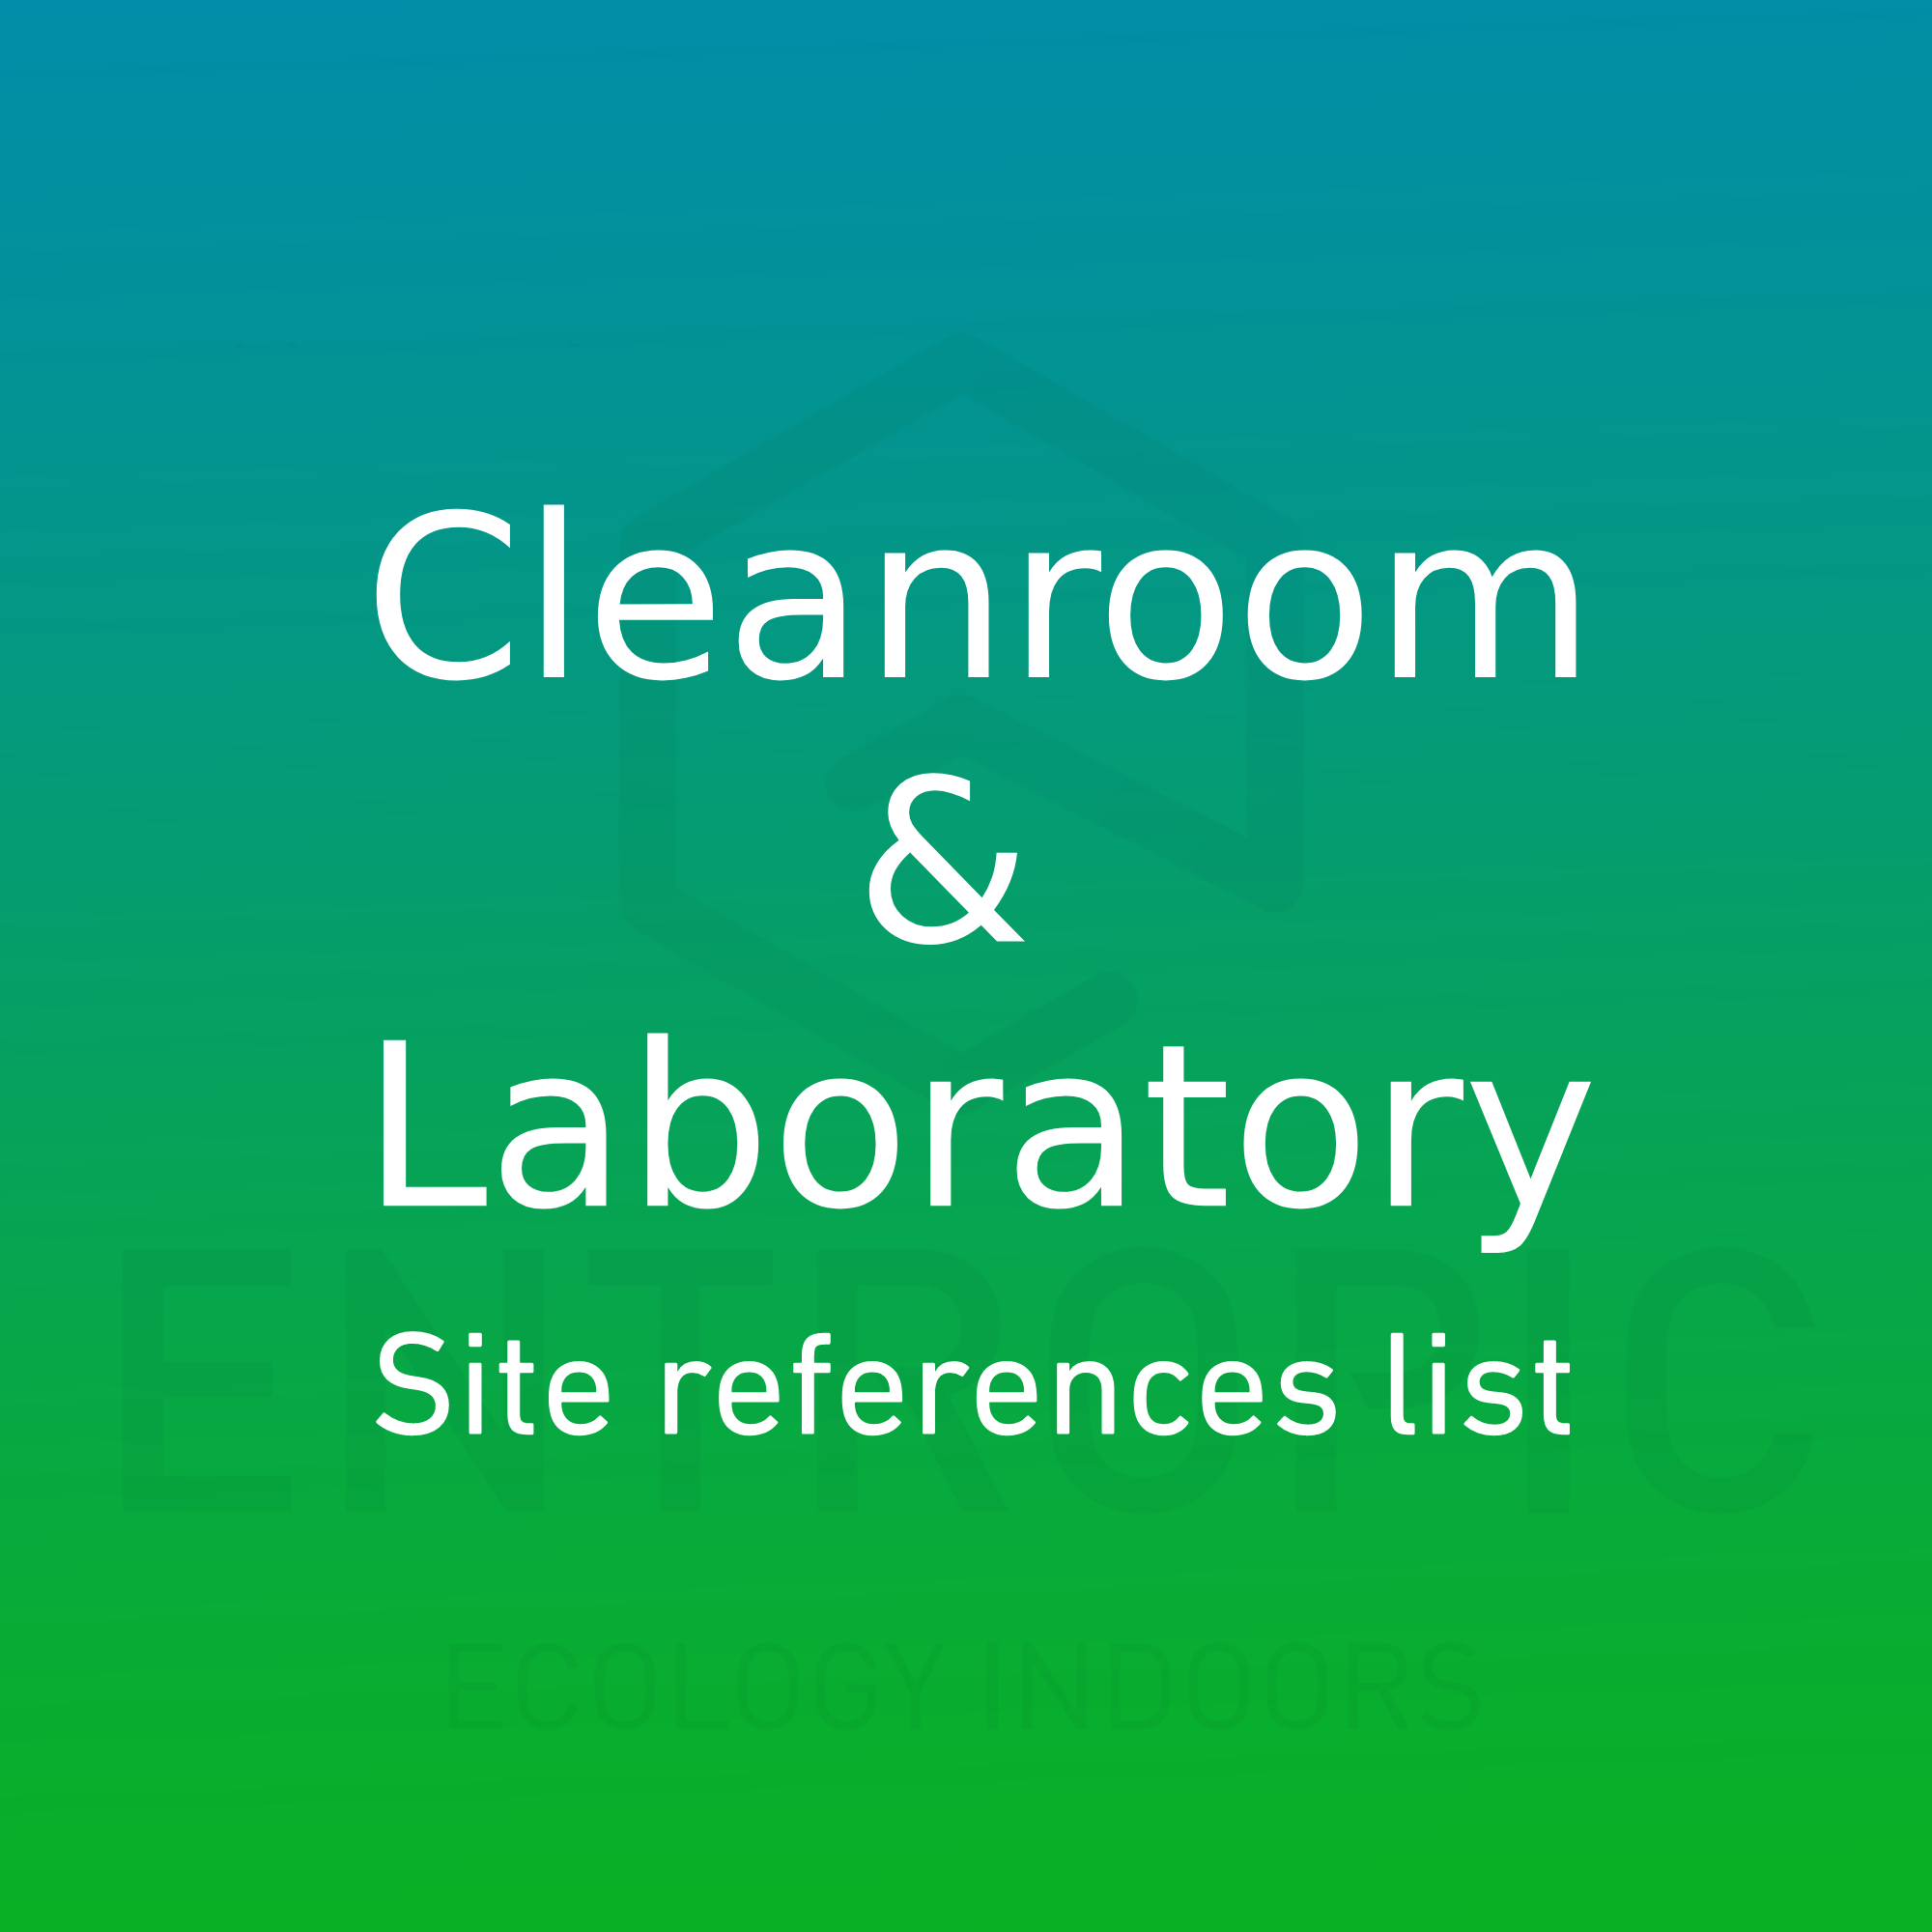 lab-cleanroom-site-reference-list